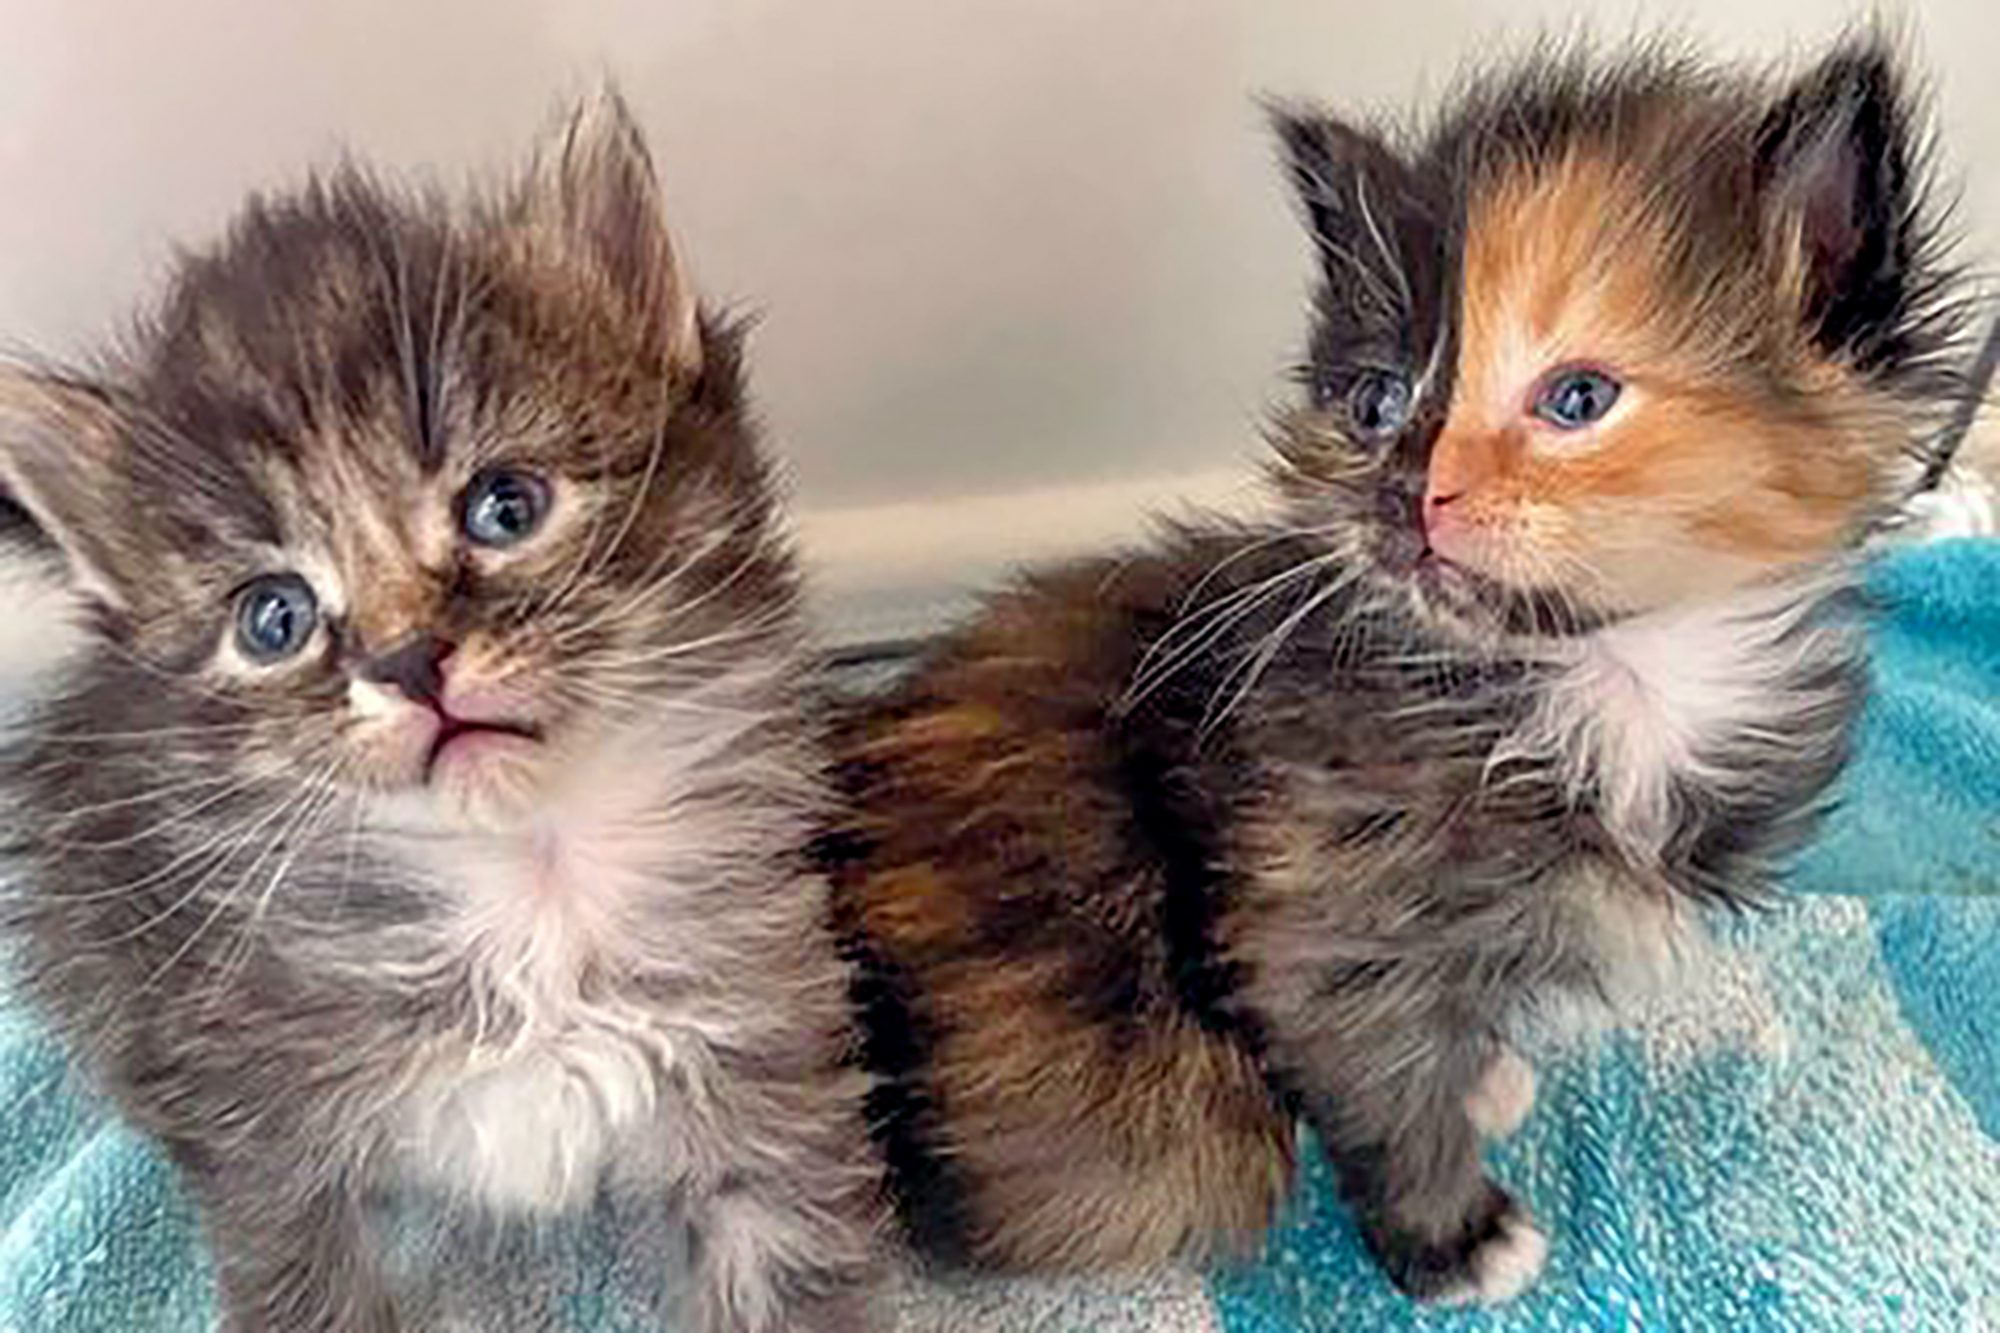 rare Chimera kittens, one with two-toned faced